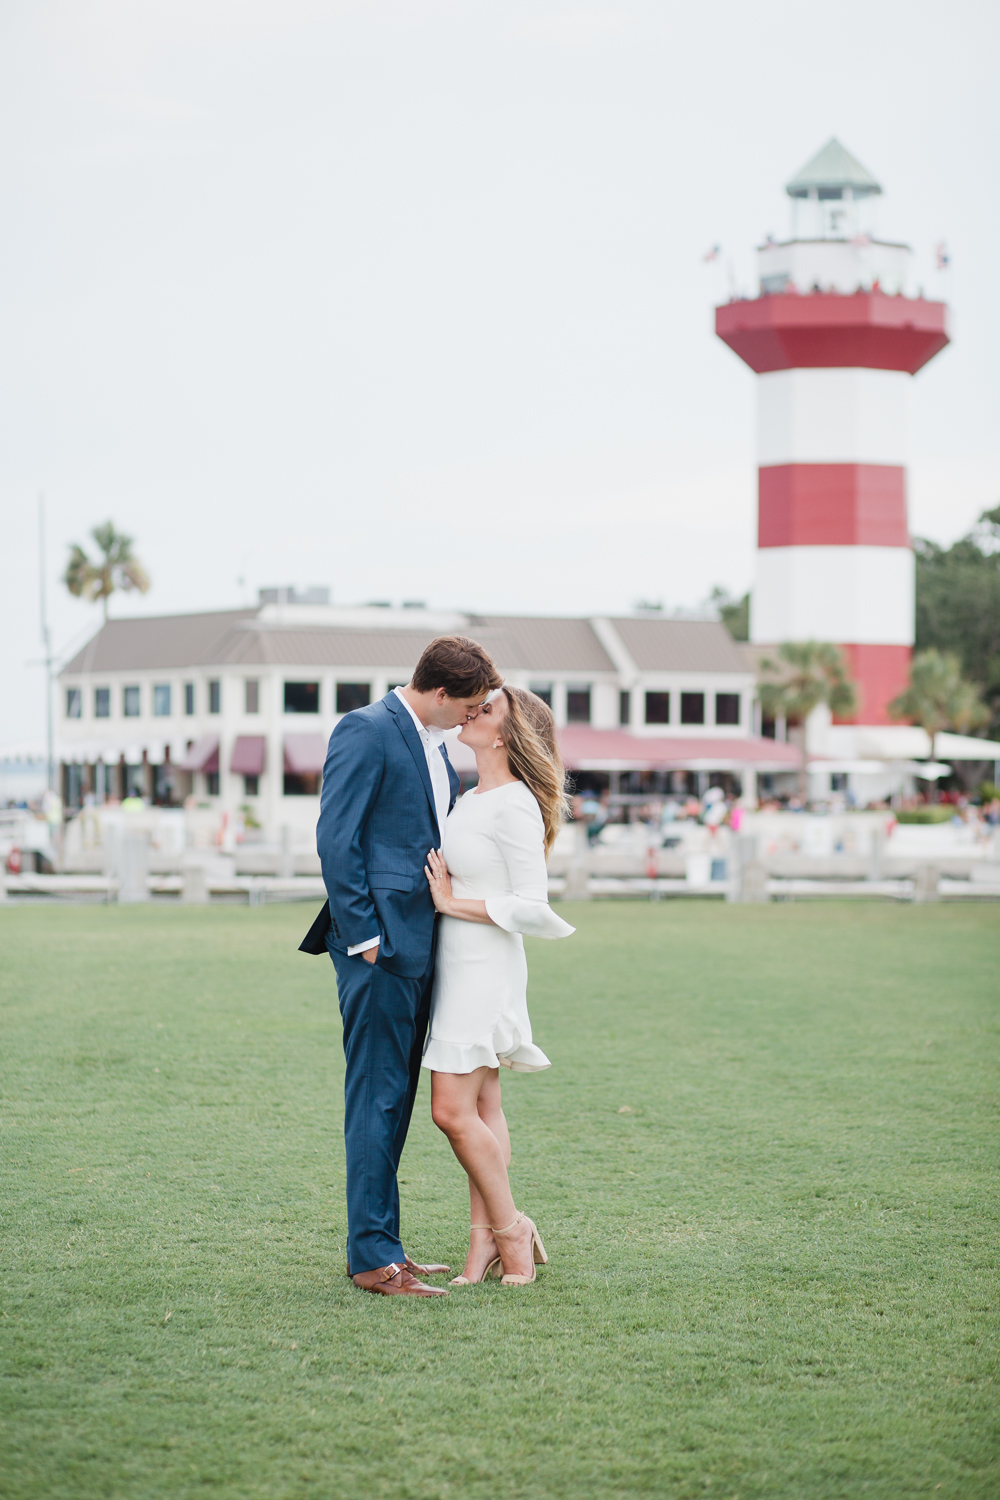 emily baucom charleston wedding photographer (19 of 25)